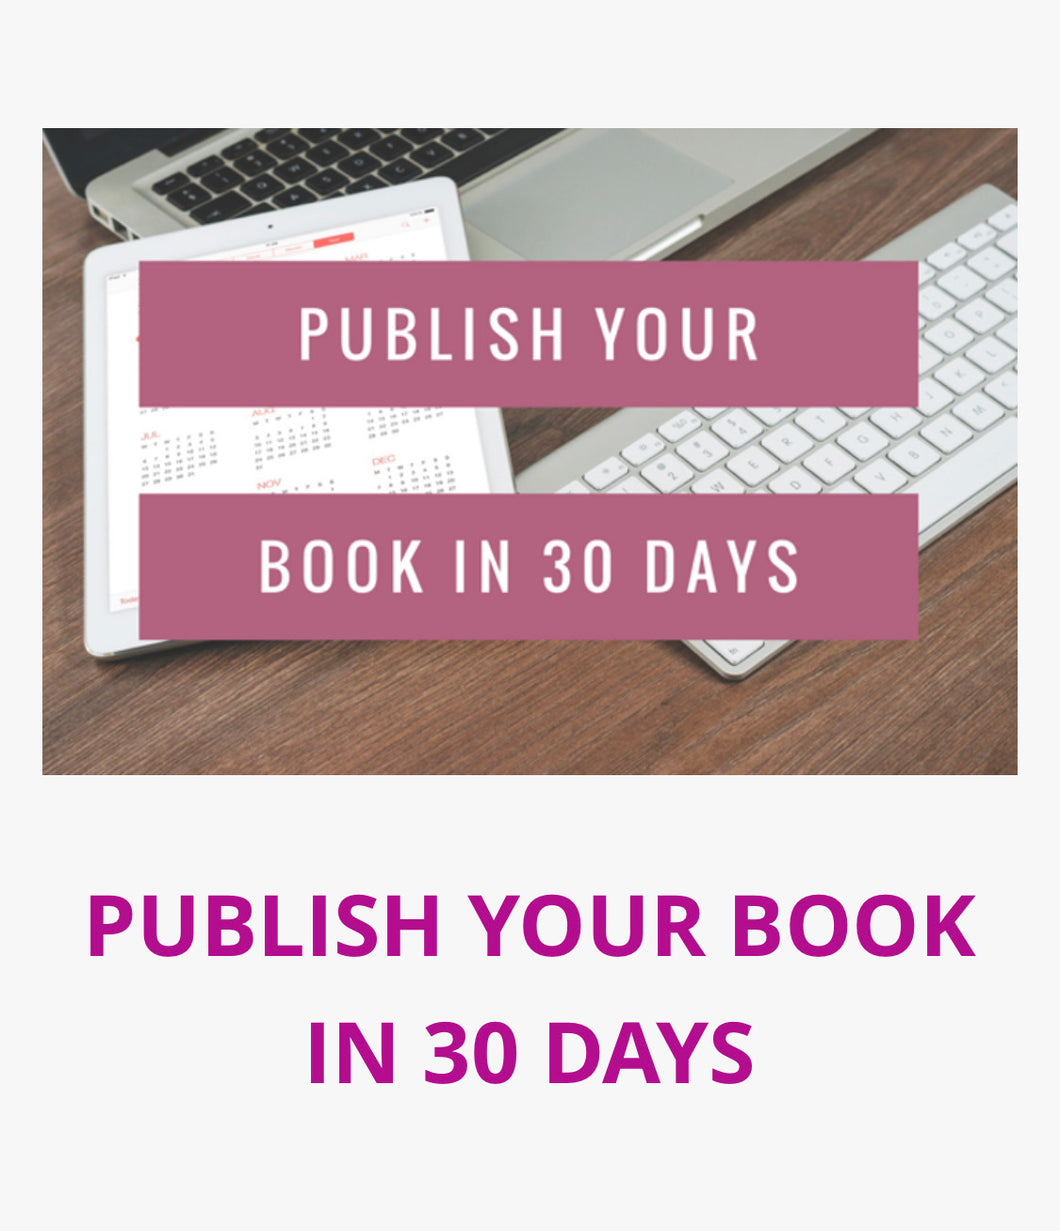 PUBLISH YOUR BOOK IN 30 DAYS